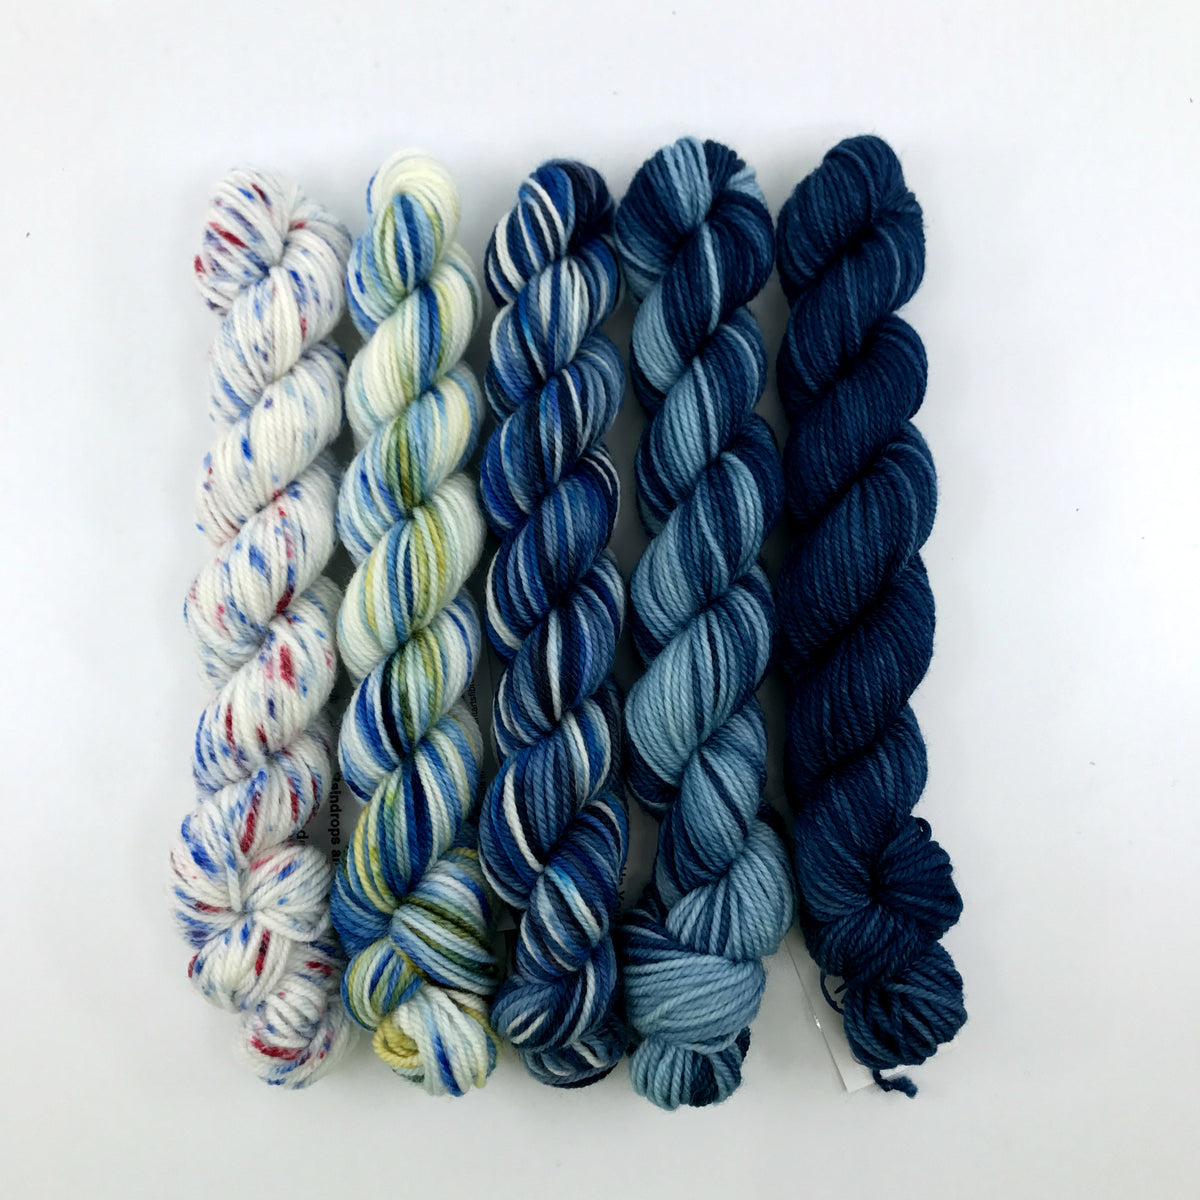 Socknado Twisters Mini Skein Set - I've Got The Blues